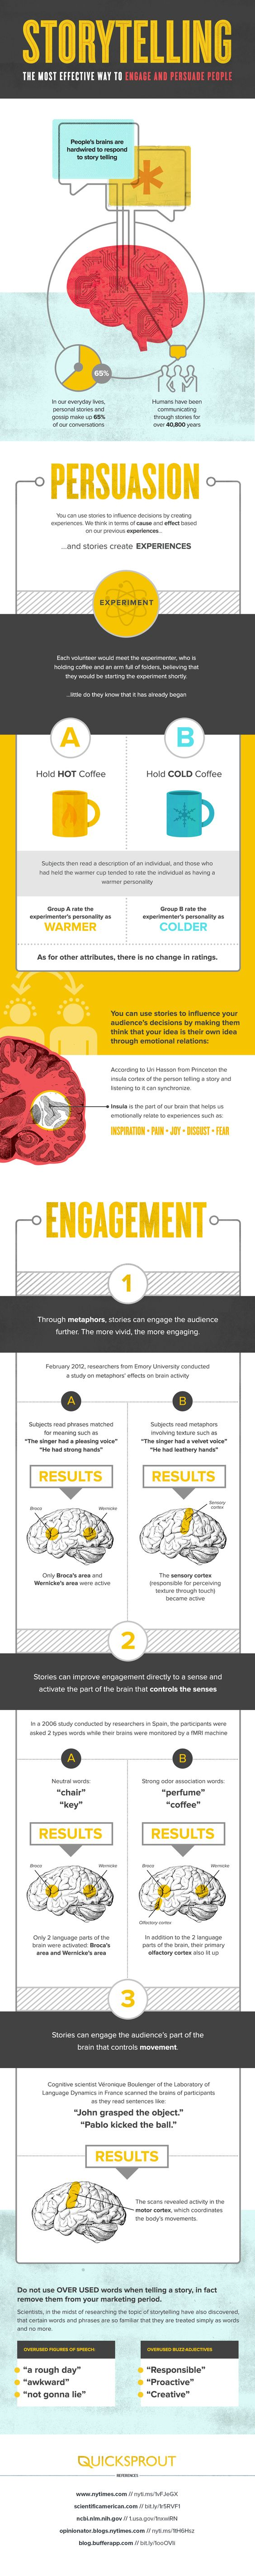 storytelling engage persuade